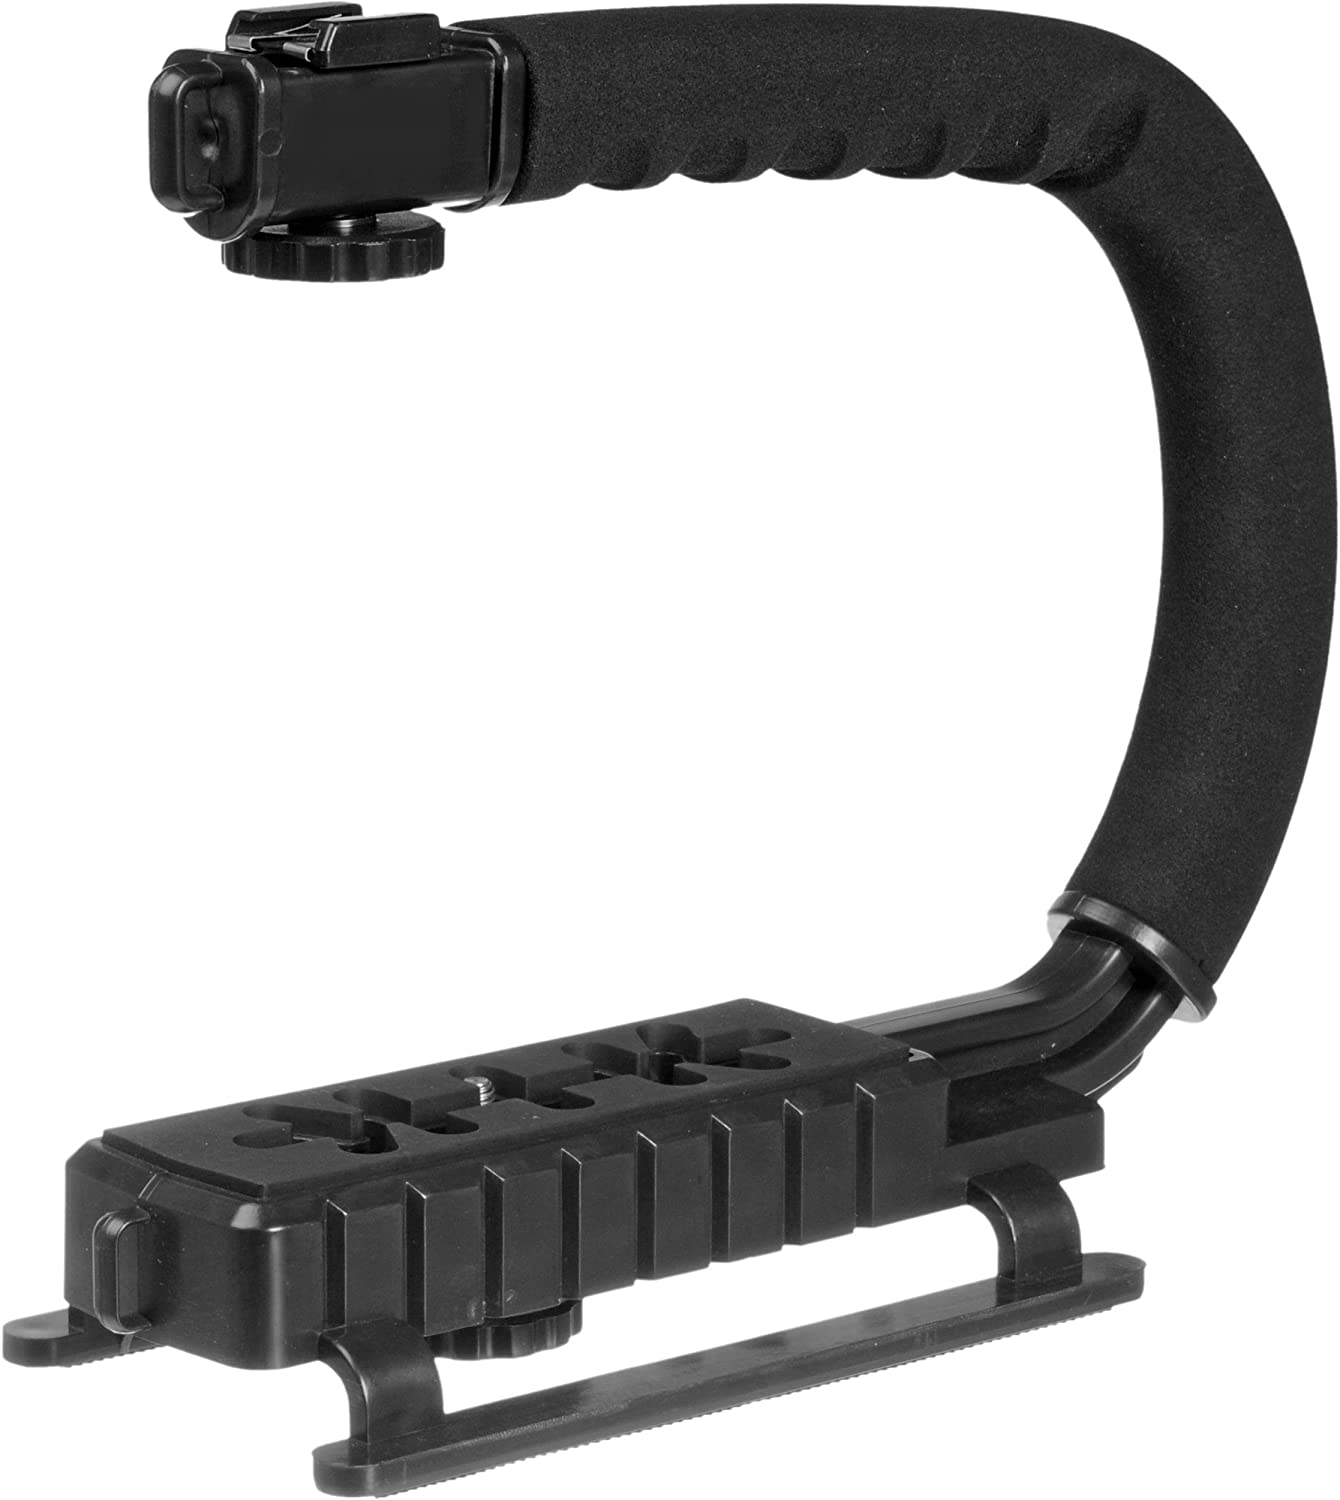 Pro Video Stabilizing Handle Grip A20 Vertical Optio Pentax for: Max 49% Low price OFF